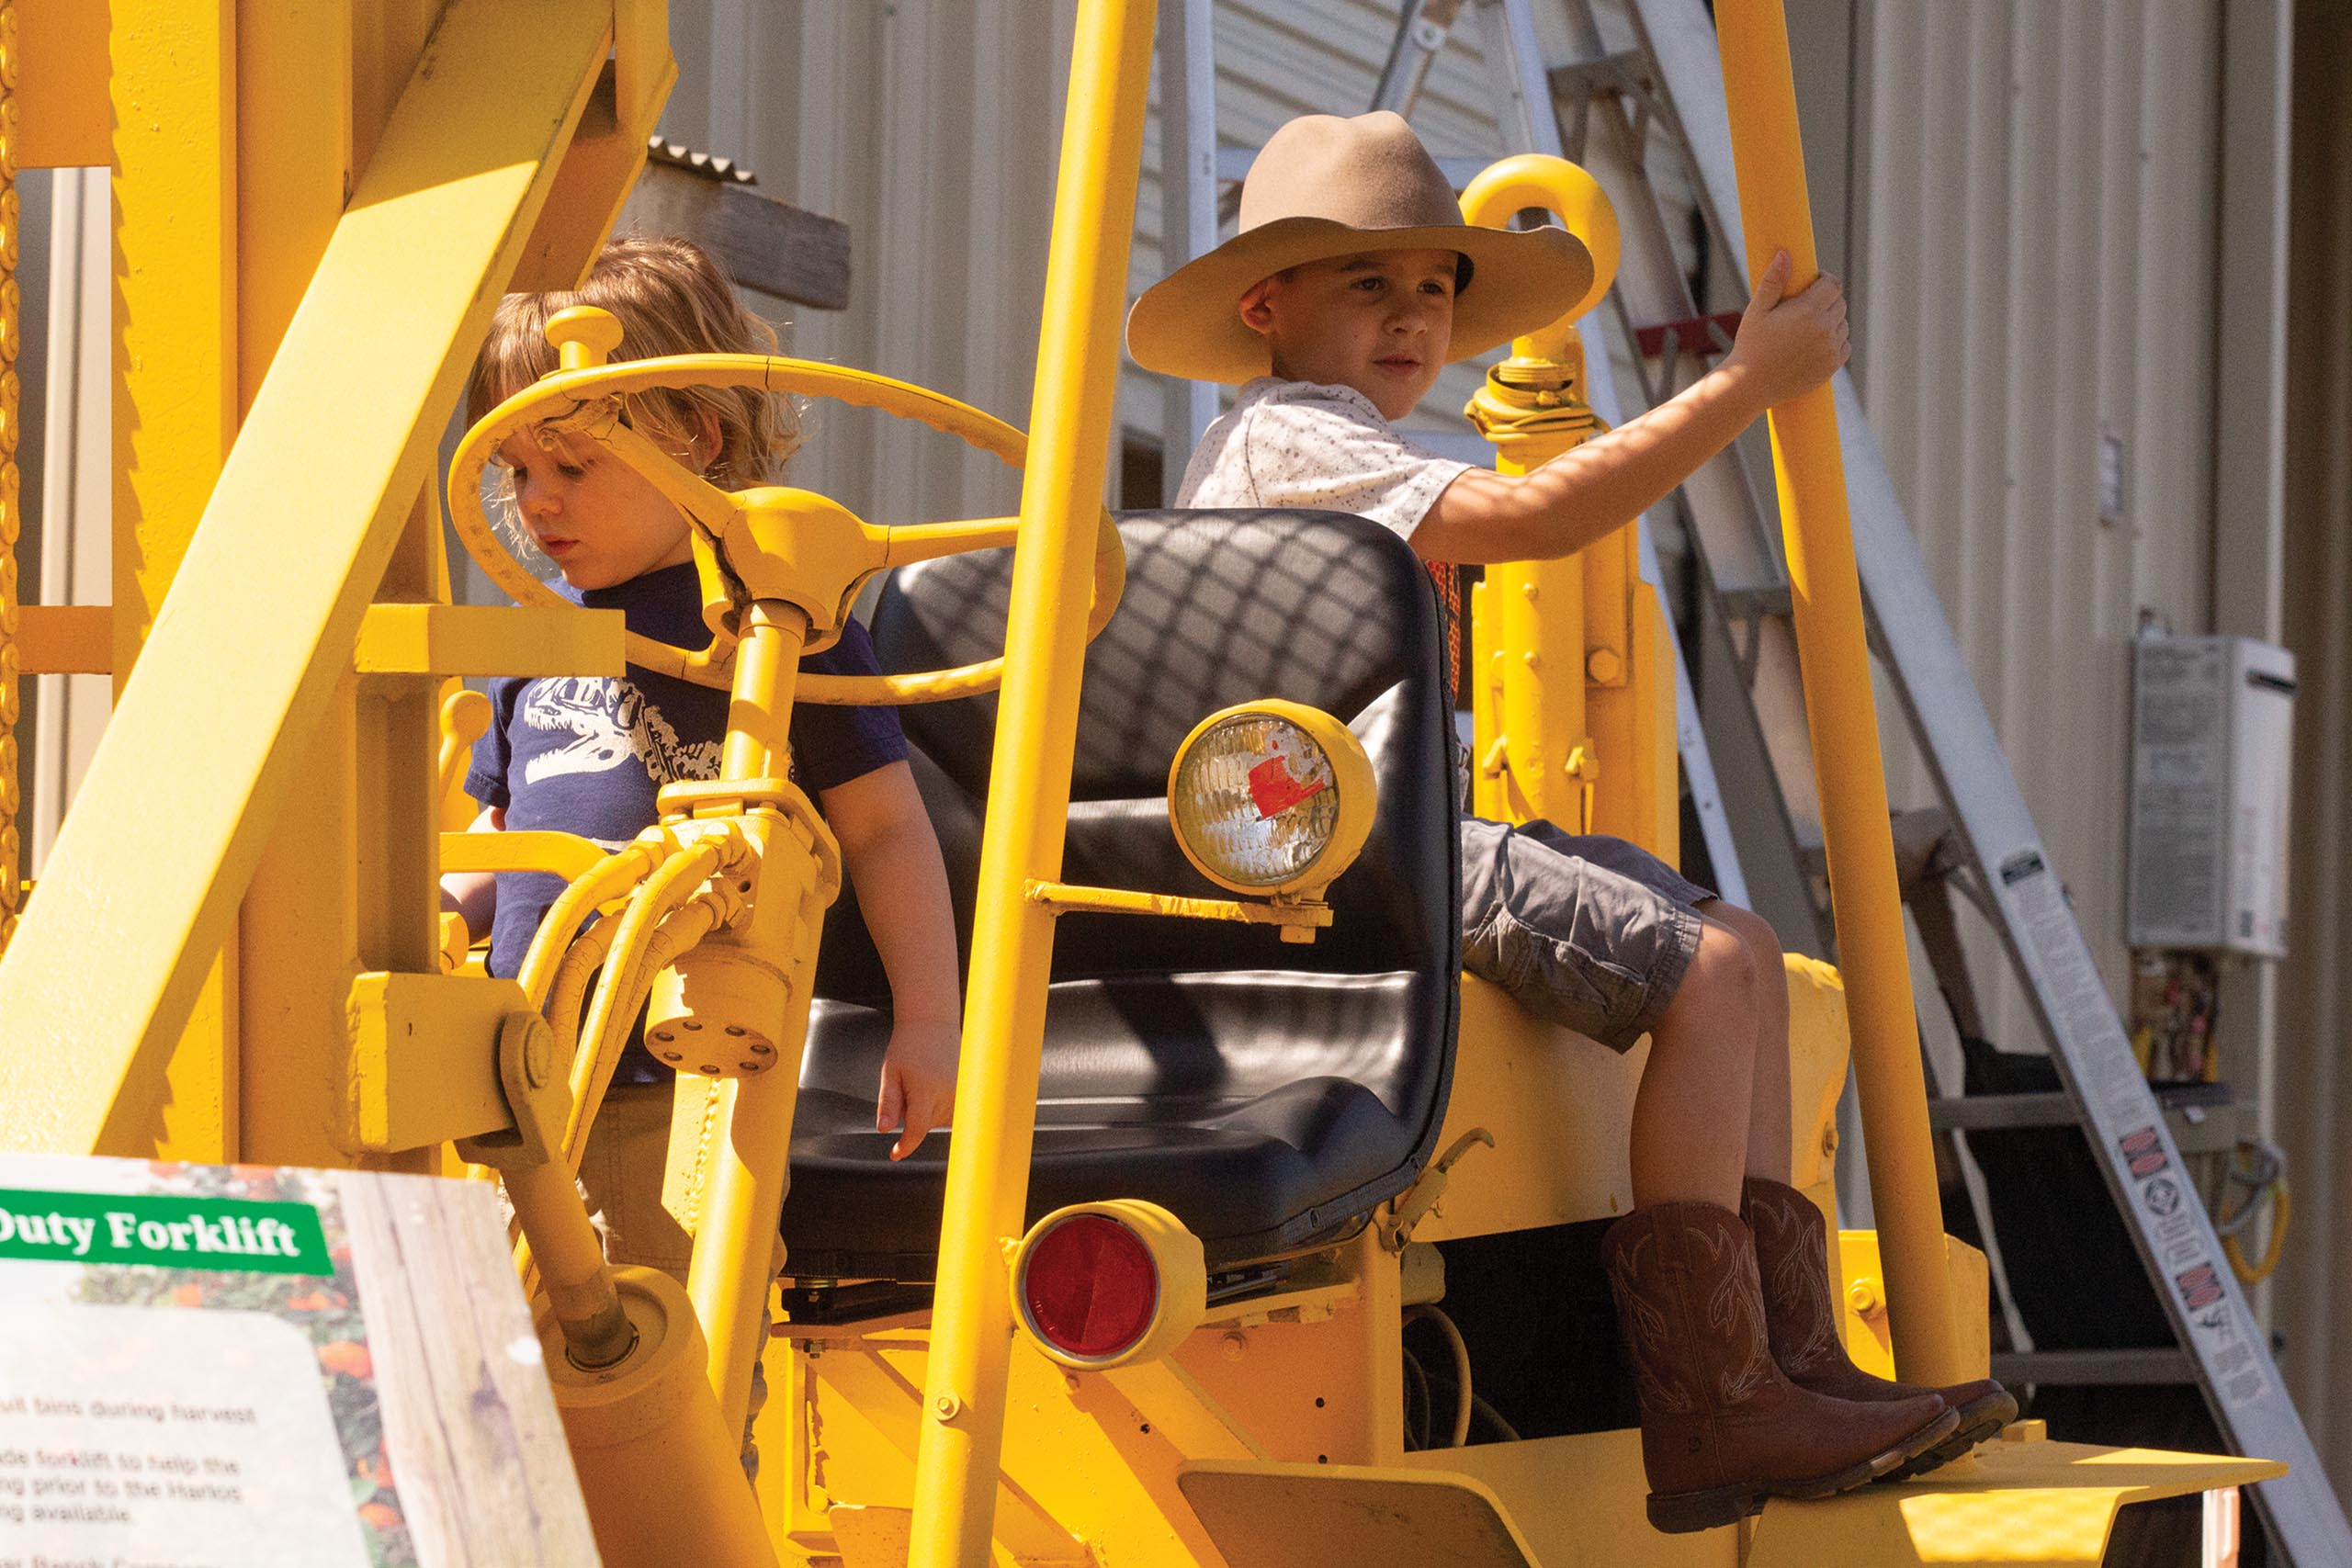 bi-ed-bobs_kids-on-tractor